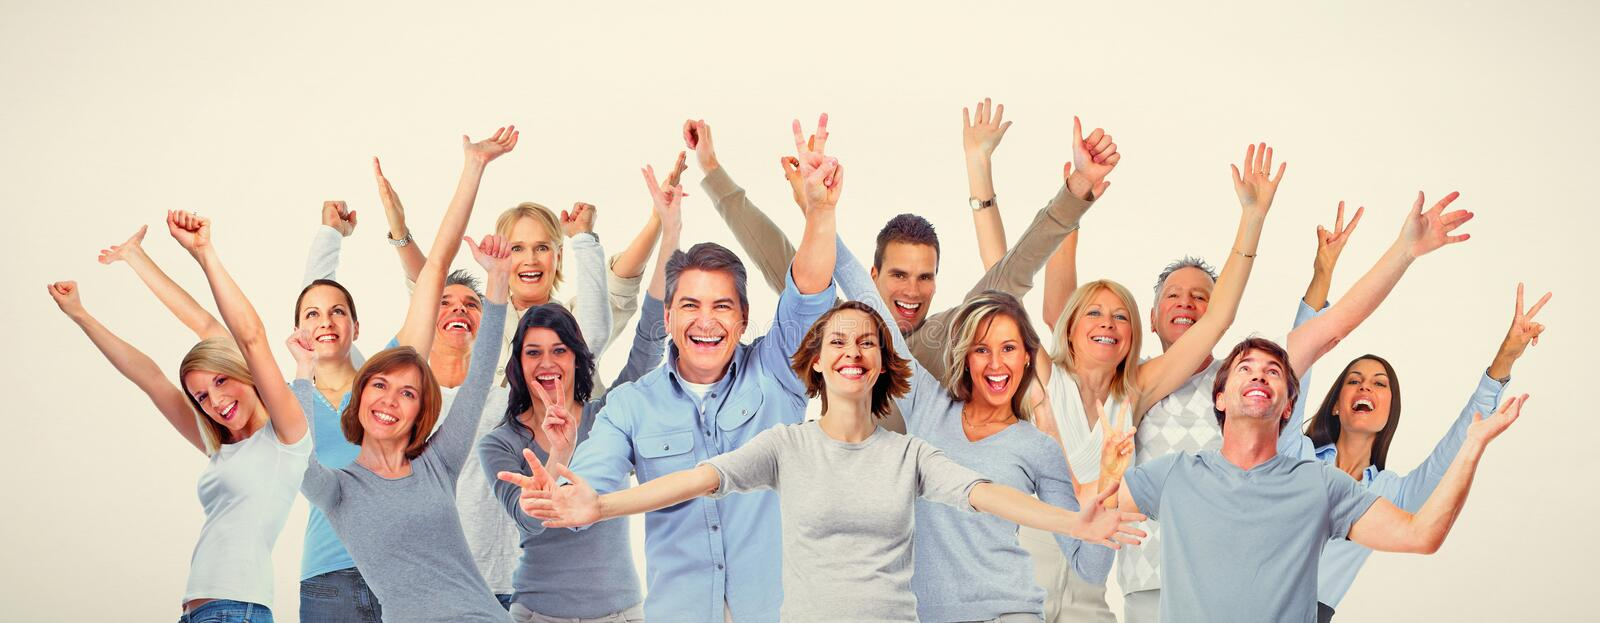 Happy people stock image